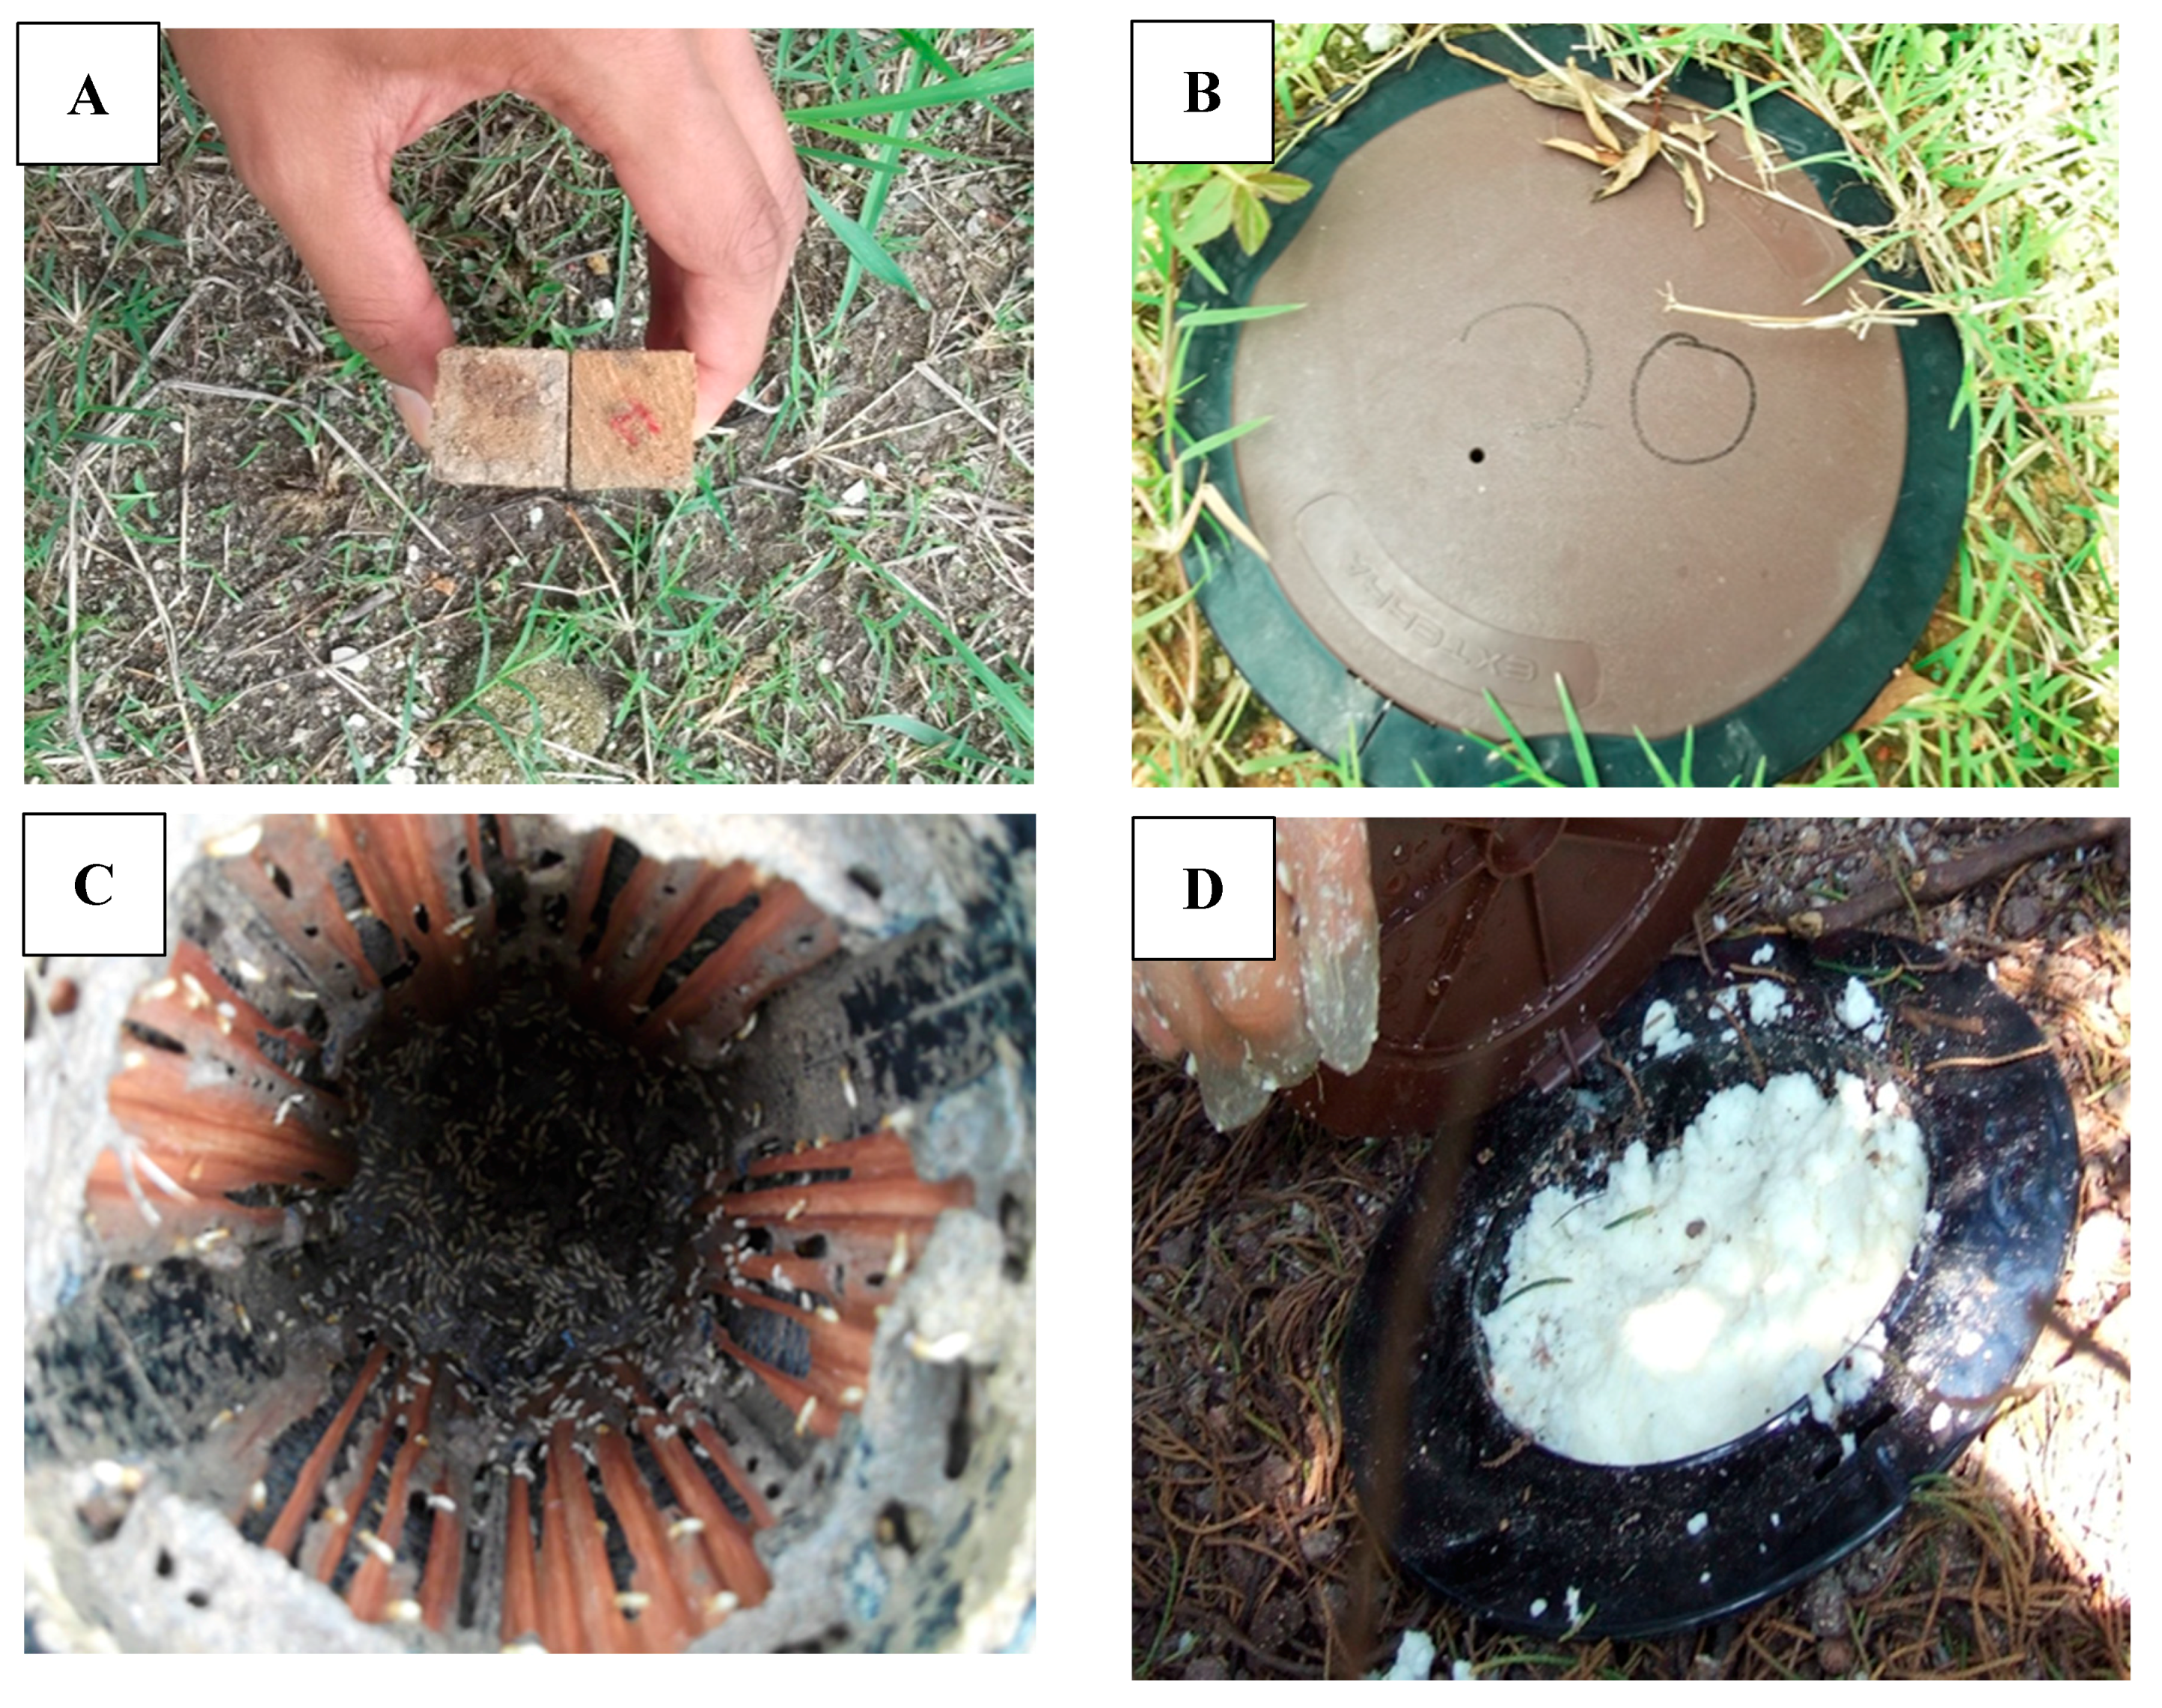 Insects Free Full Text Efficacy Of Minimum Application Of Chlorfluazuron Baiting To Control Urban Subterranean Termite Populations Of Coptotermes Gestroi Wasmann Blattodea Rhinotermitidae Html